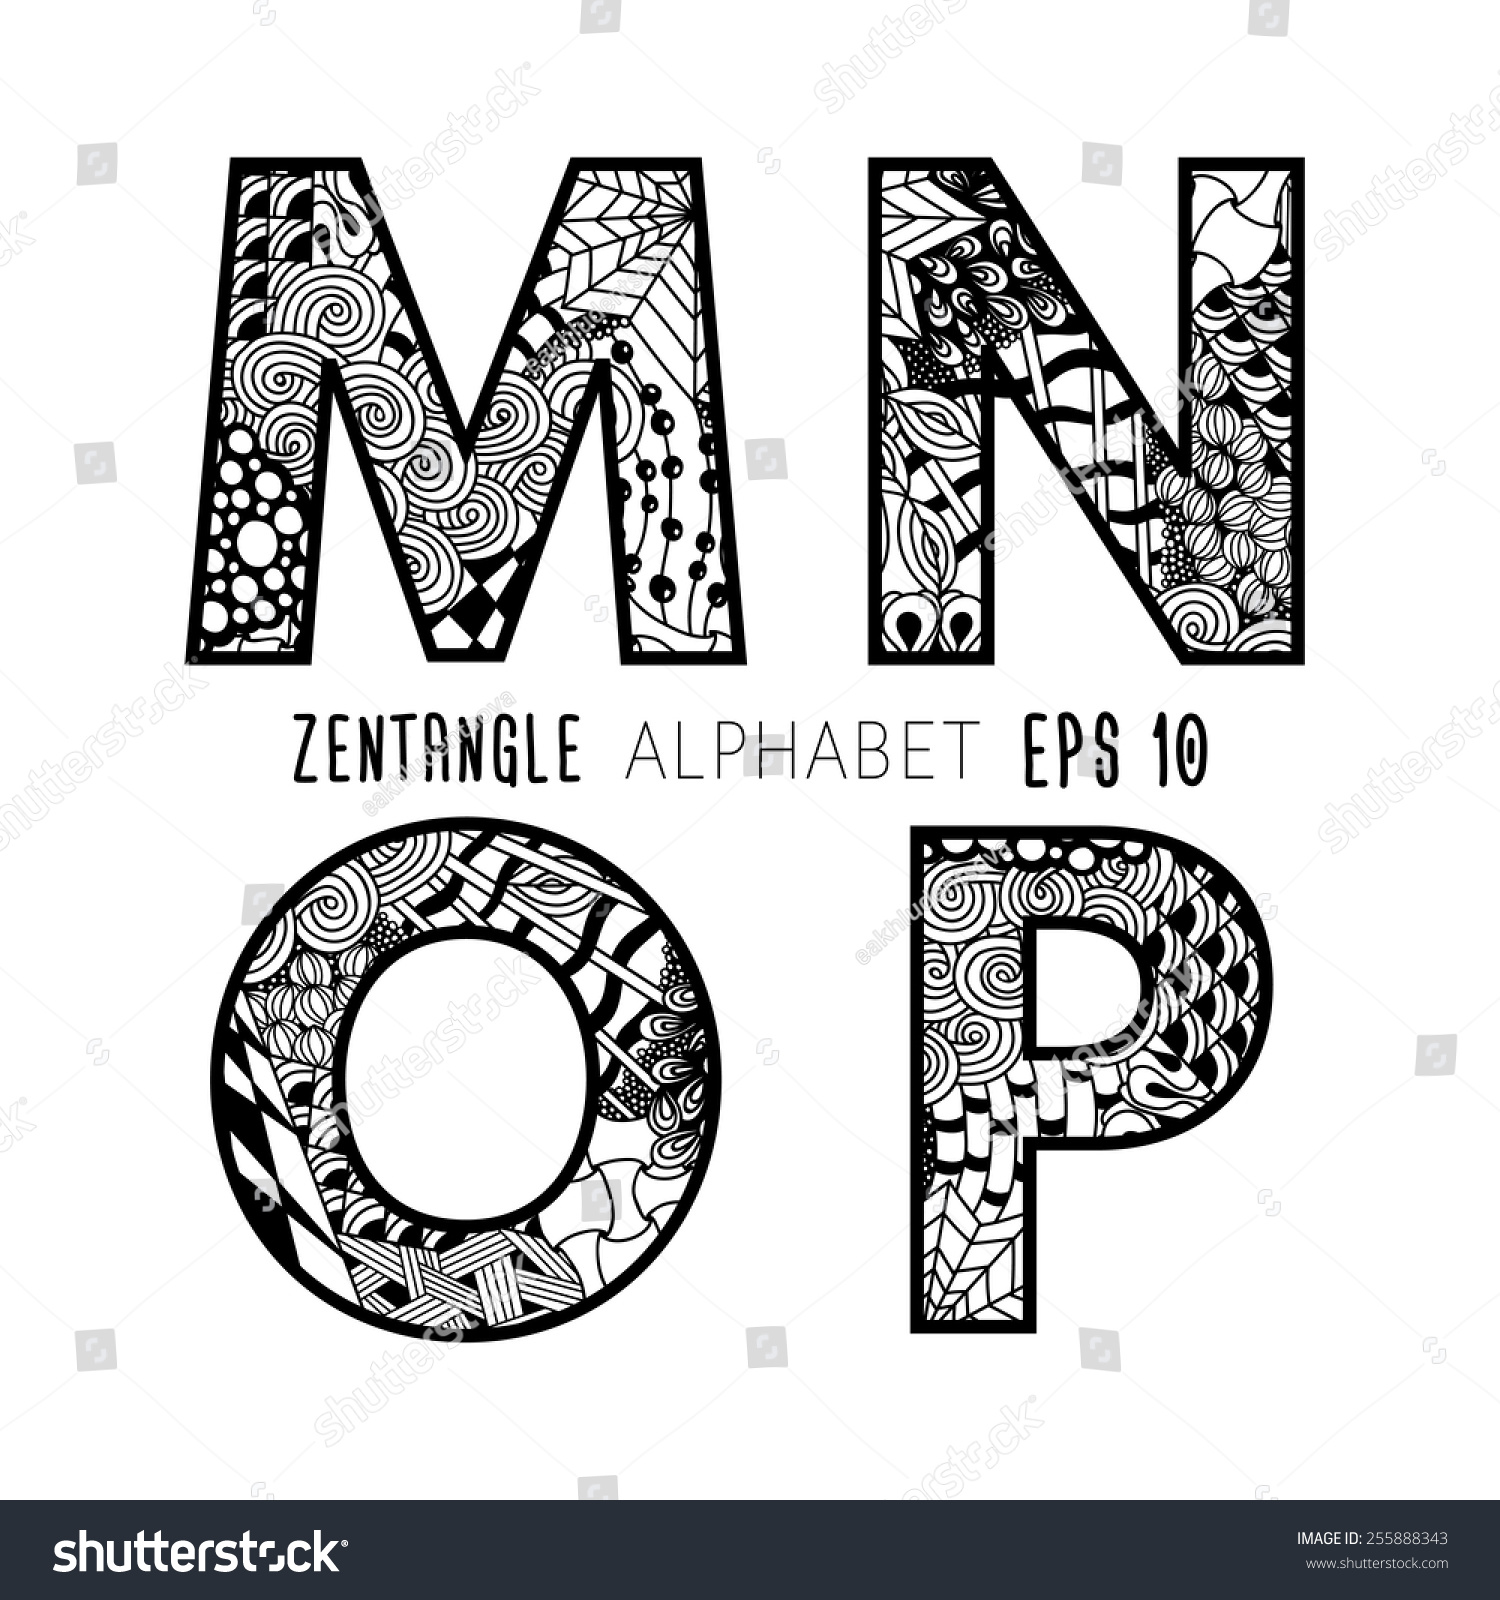 Royalty free vector set of zentangle letters doodle 255888343 vector set of zentangle letters doodle alphabet on plain white background black lace from altavistaventures Gallery